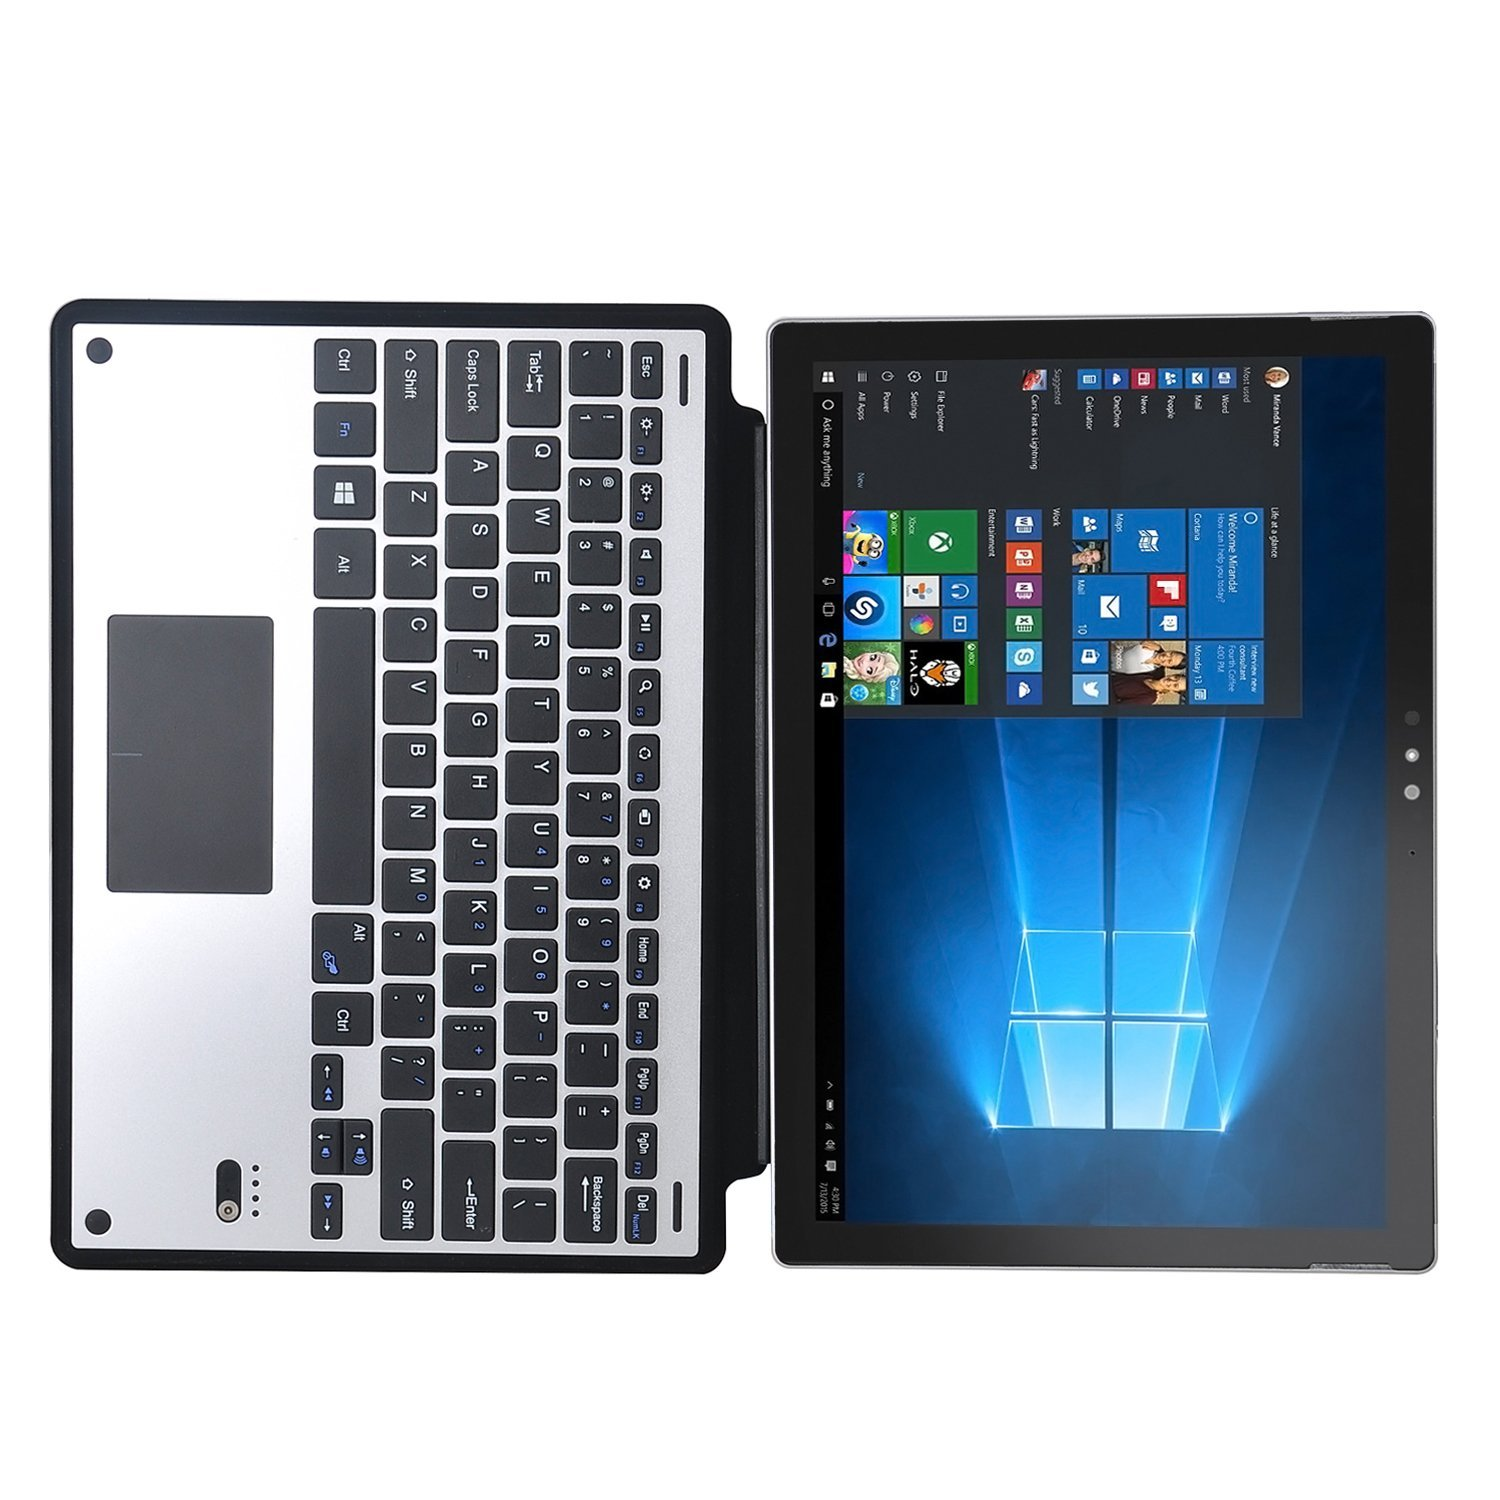 CucKooDo Ultra Thin High Quality DETACHABLE Bluetooth Keyboard Stand Case Cover for Microsoft Surface Pro 4 12 3 inch Tablet in Tablets & e Books Case